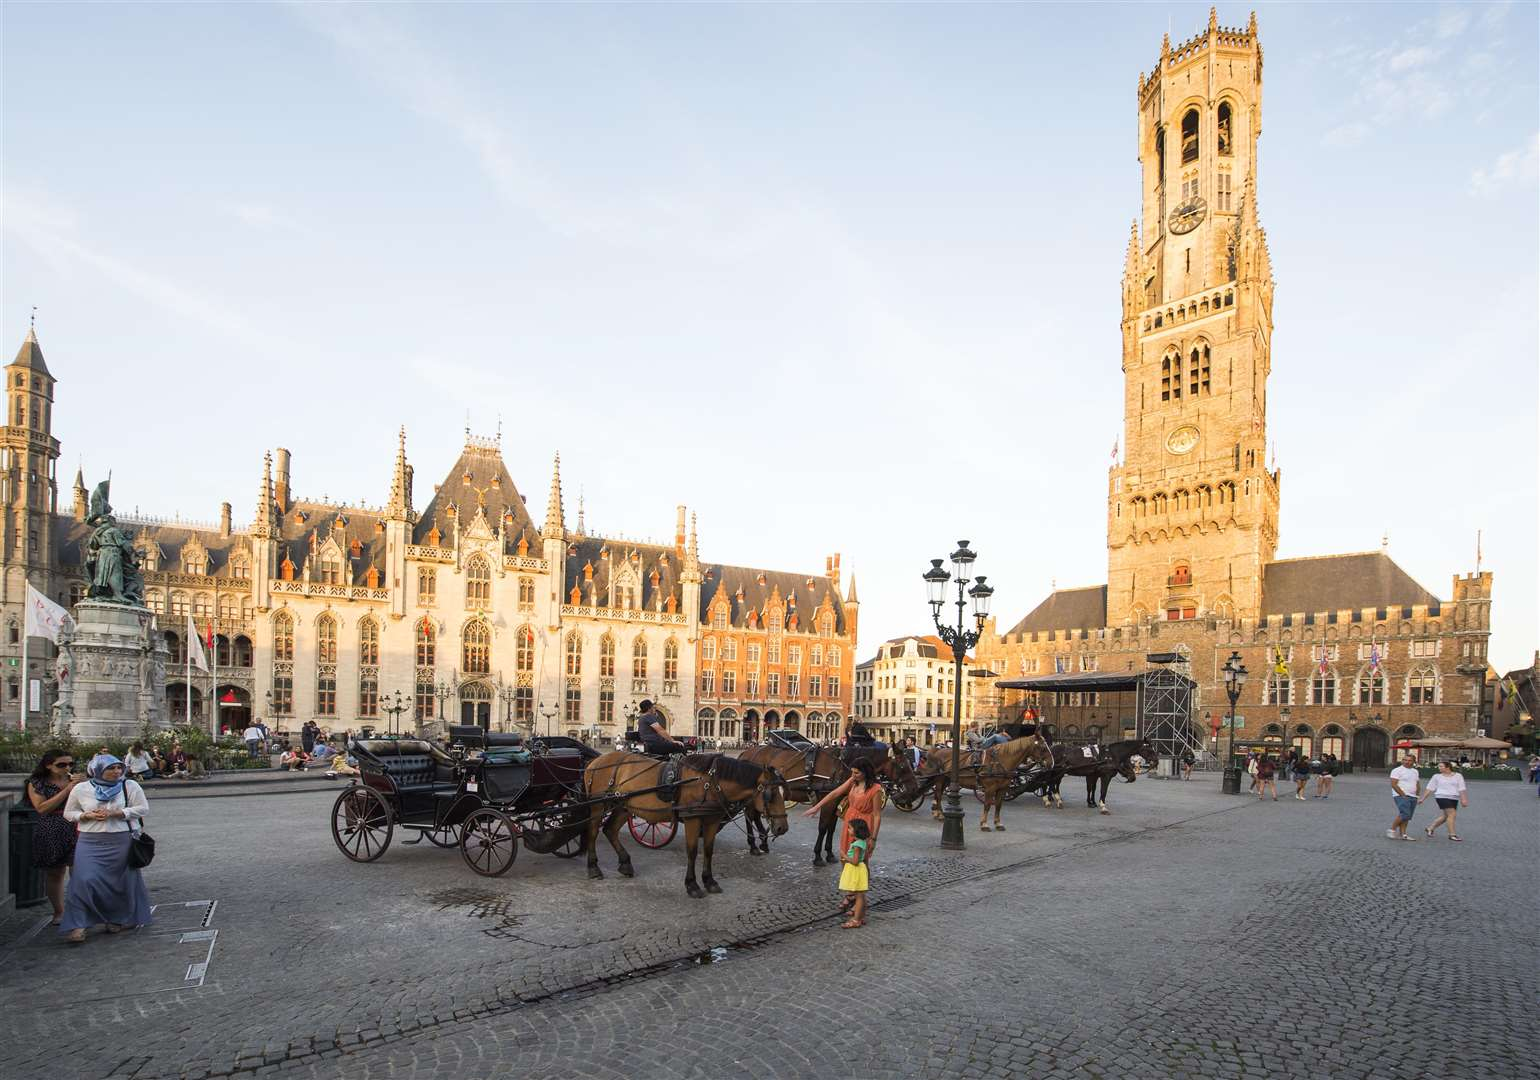 The Markt square features a 13th-century 47 bell carrillon belfry and 83 meter tower